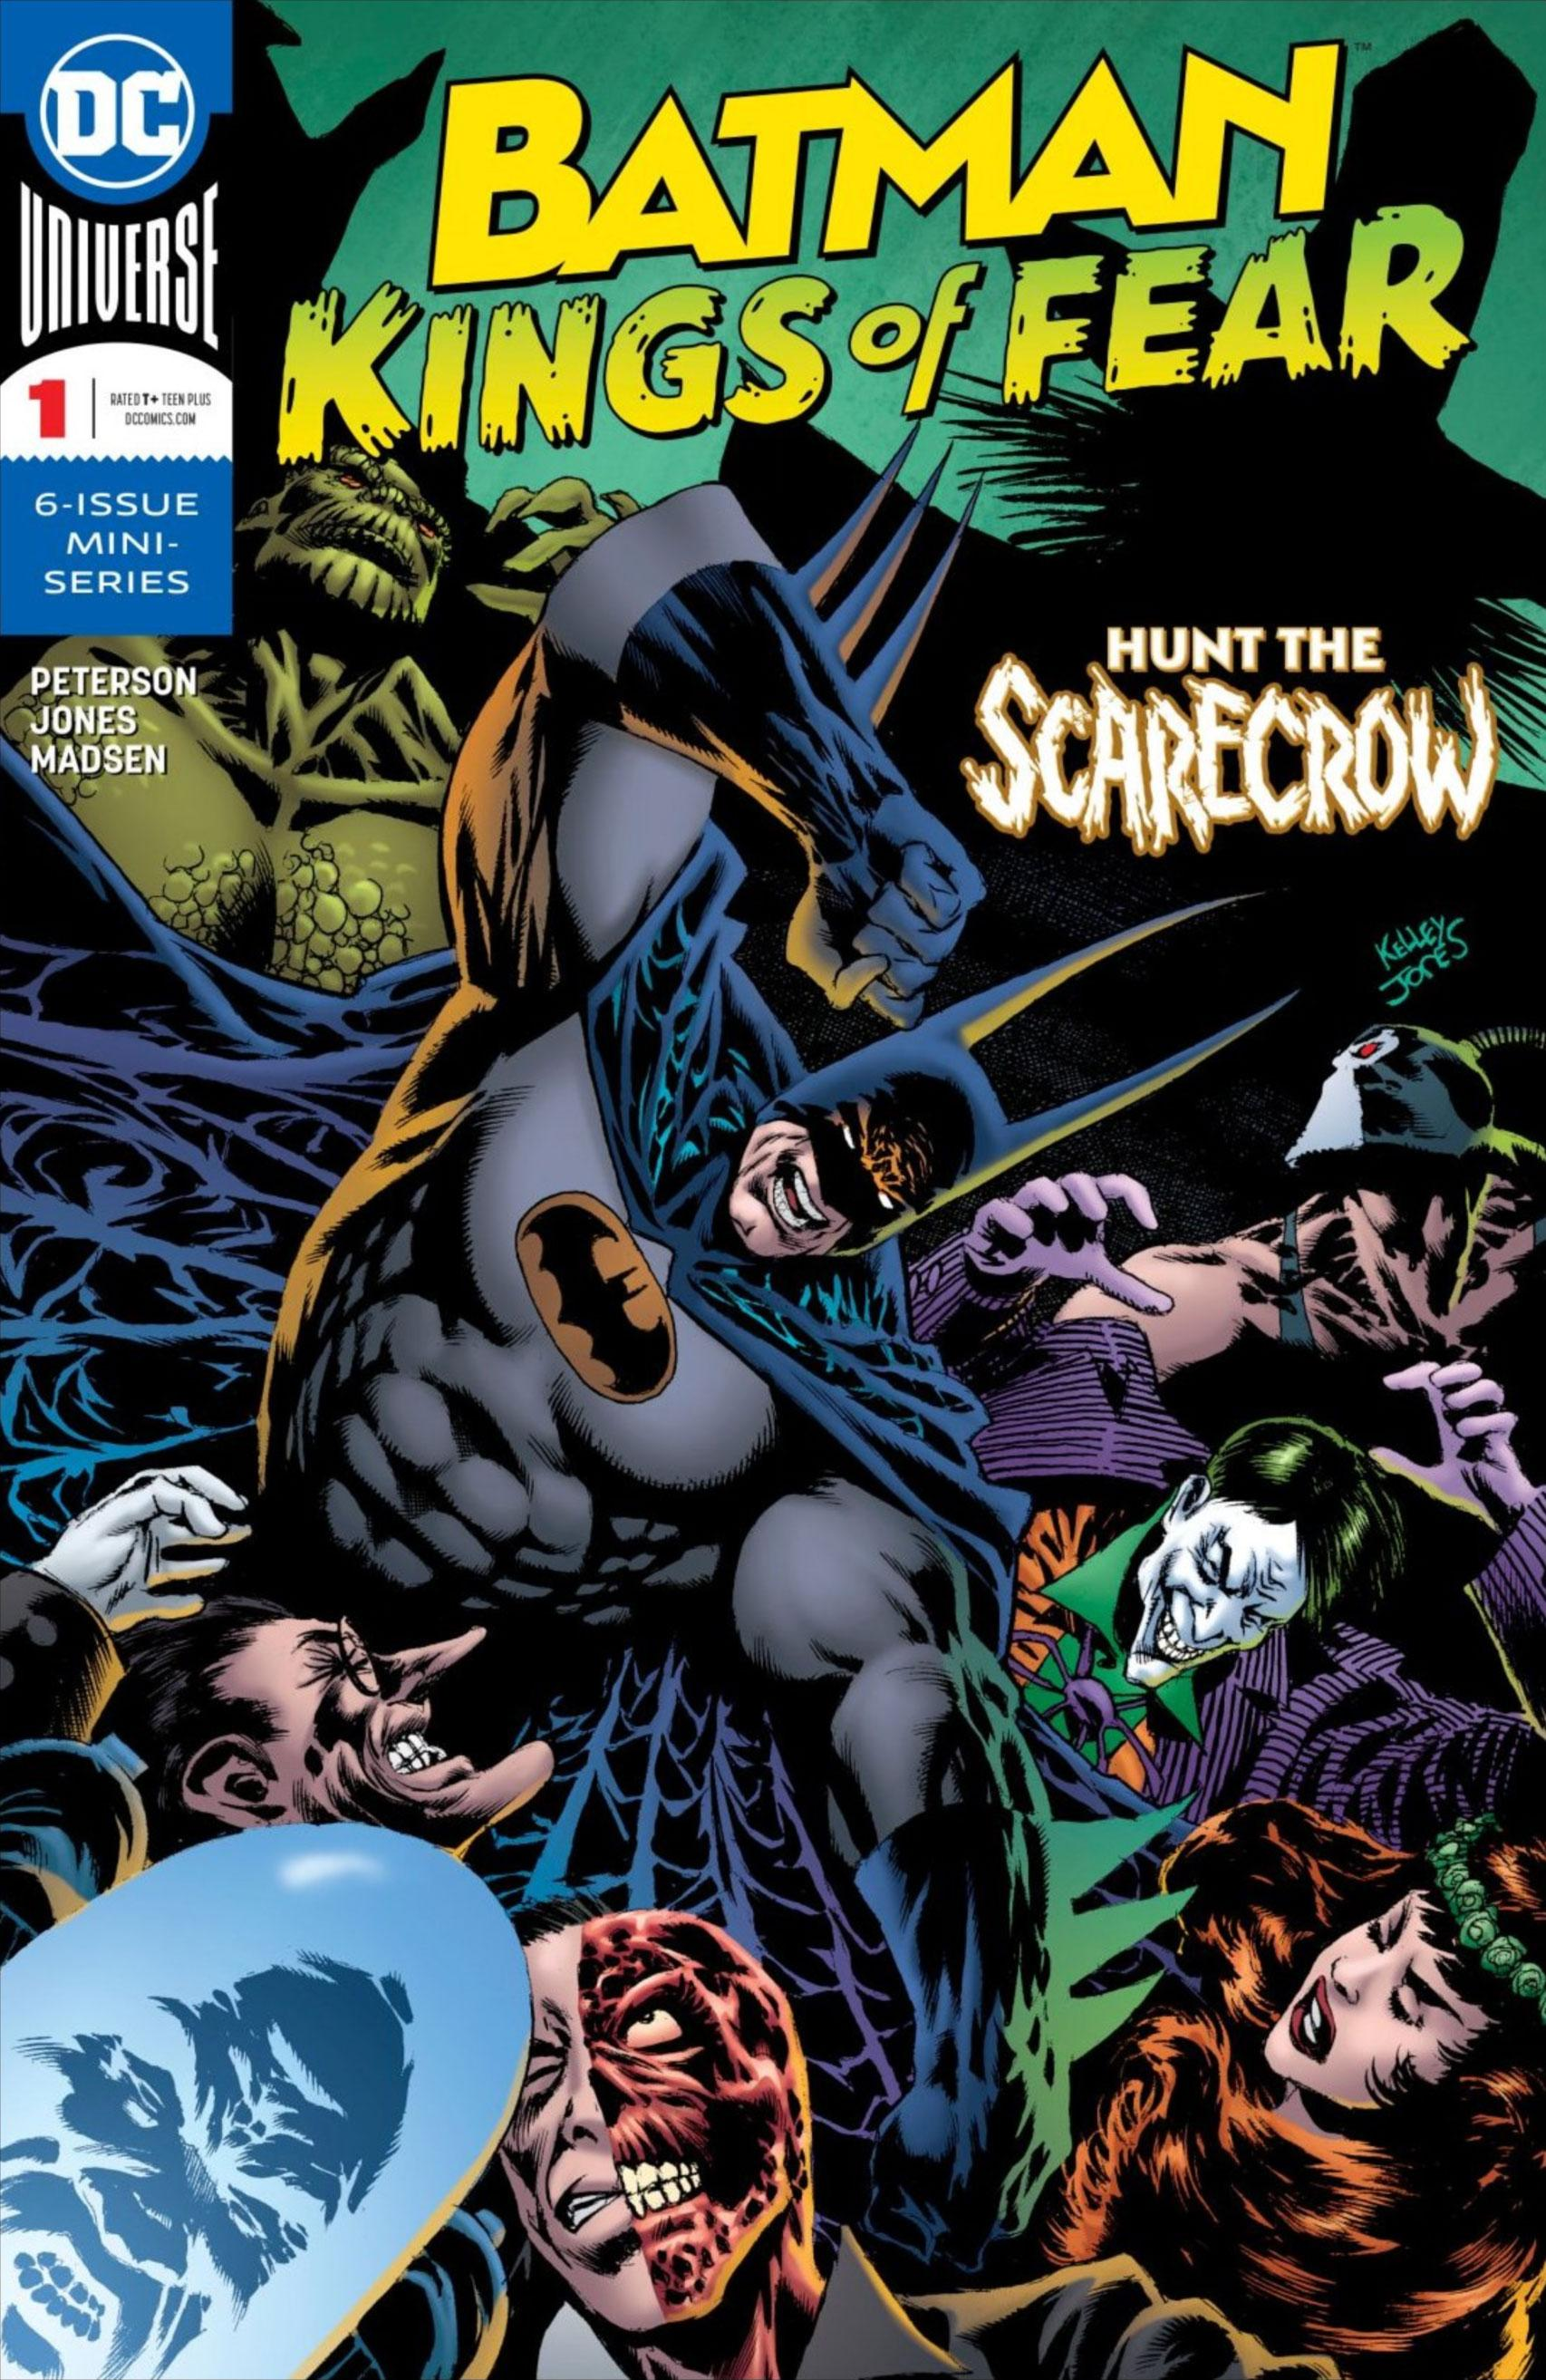 Batman: Kings of Fear Vol. 1 #1